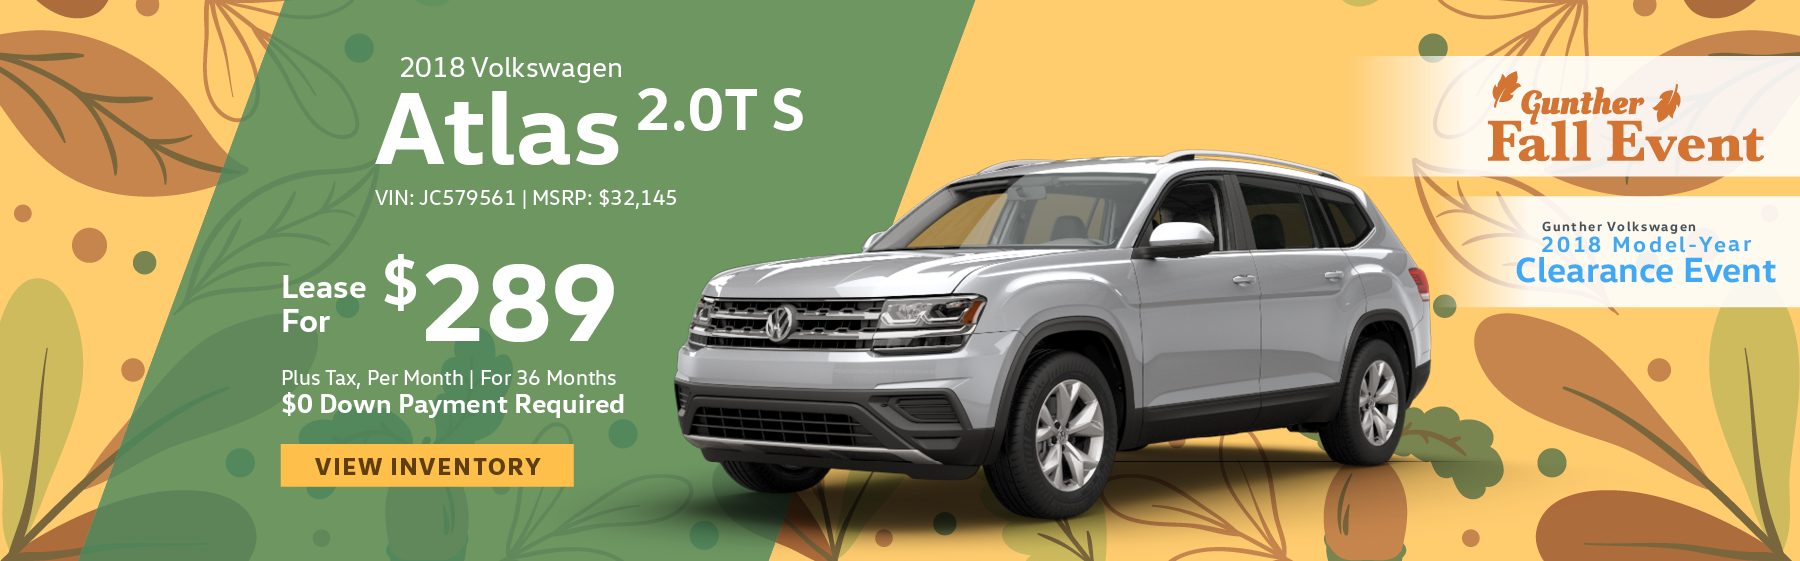 Lease the 2018 Volkswagen Atlas 2.0T S for $289 per month, plus tax for 36 months. Click here to view inventory.